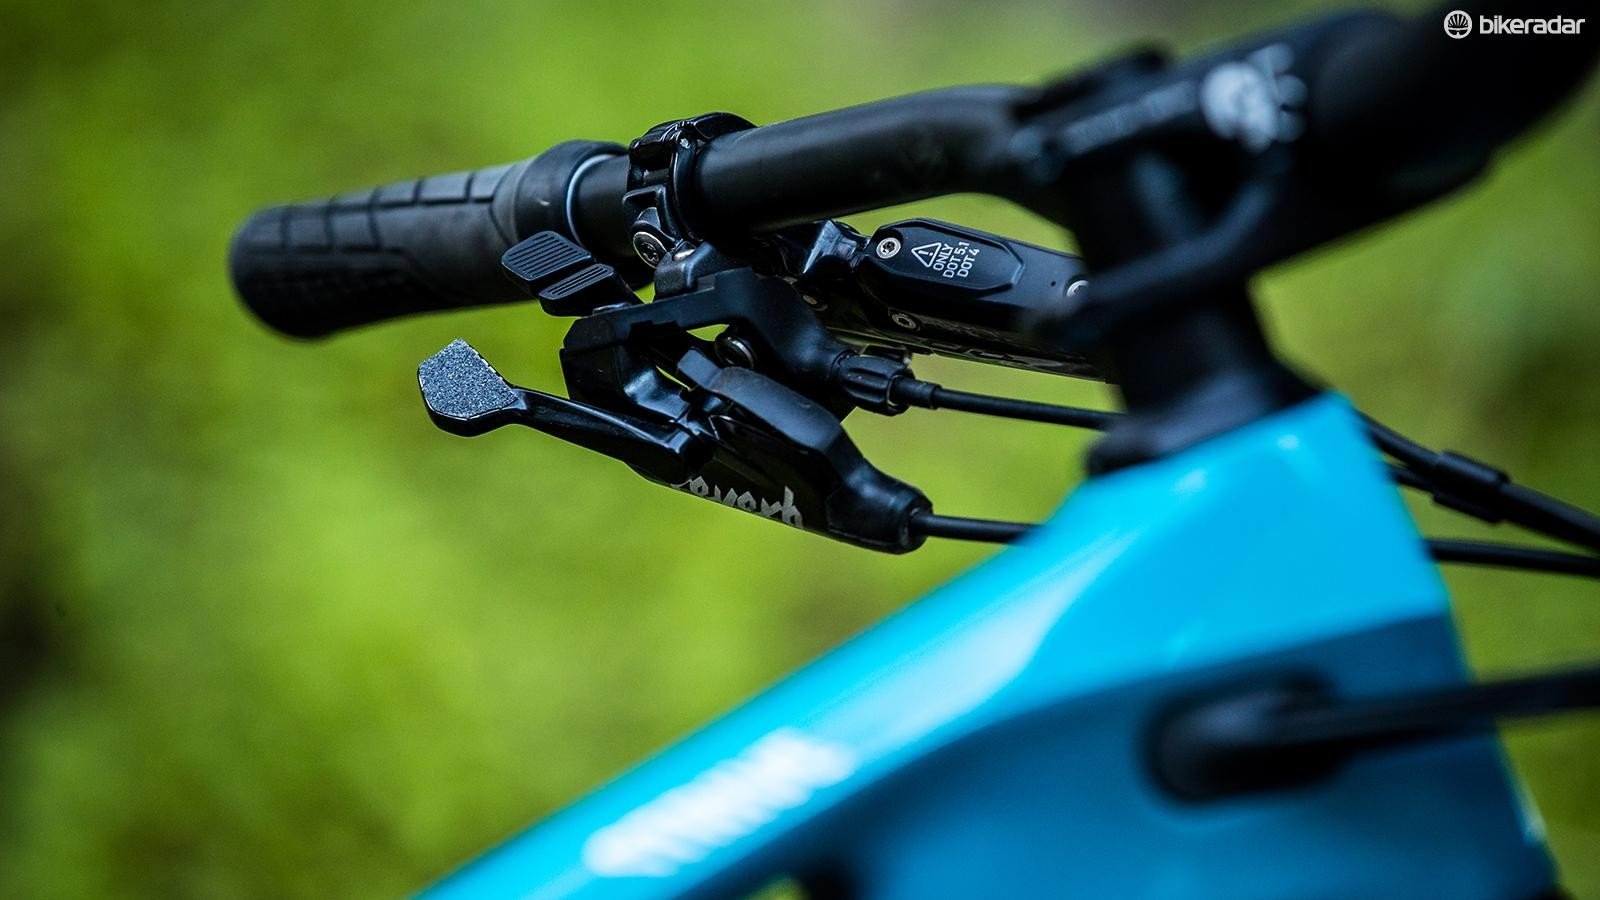 The two buttons on the new Shapeshifter Stage lever with an integrated RockShox Reverb lever